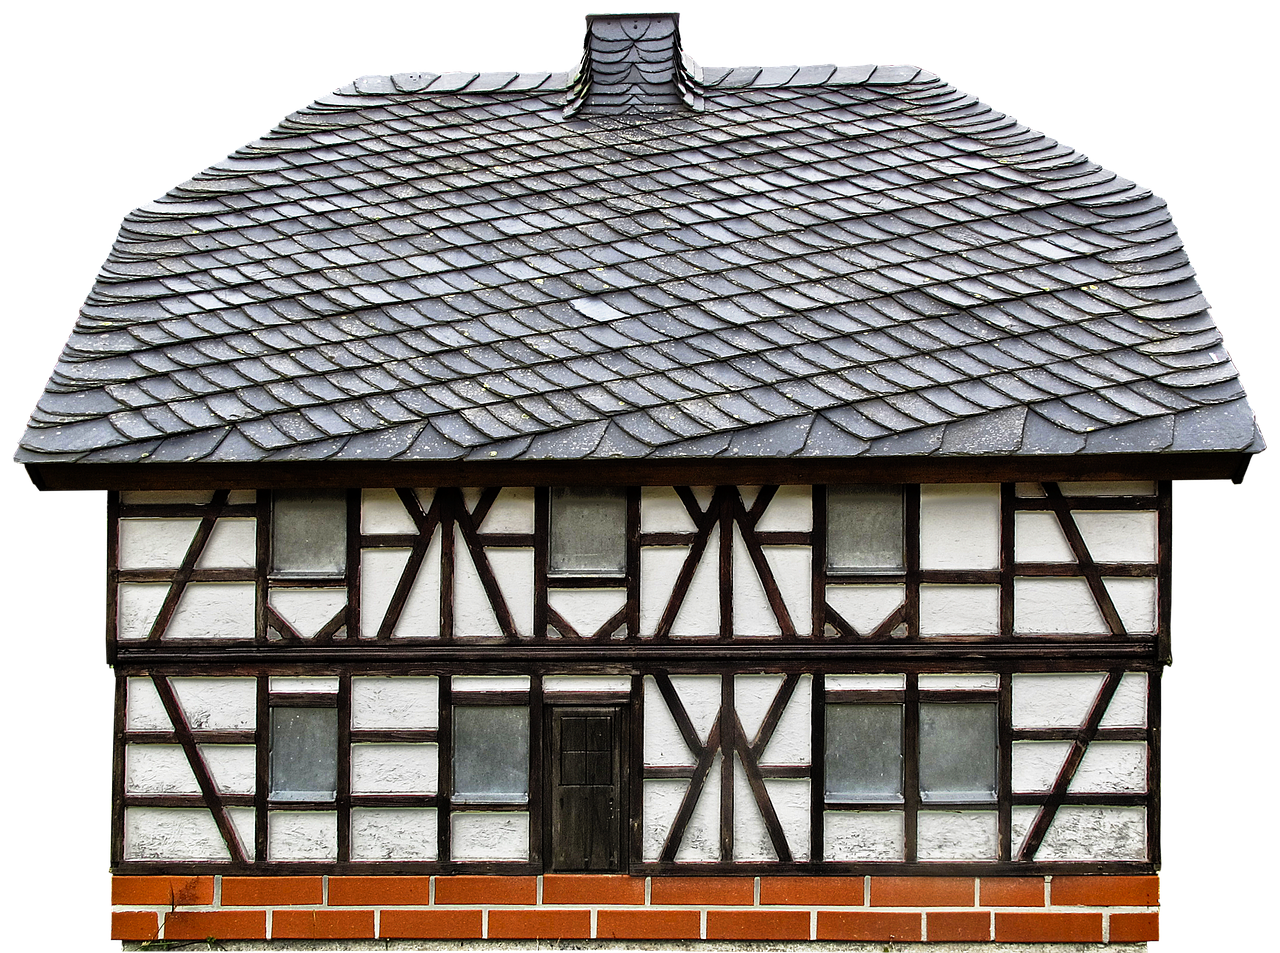 A Look At Roofing Design Trends For 2018